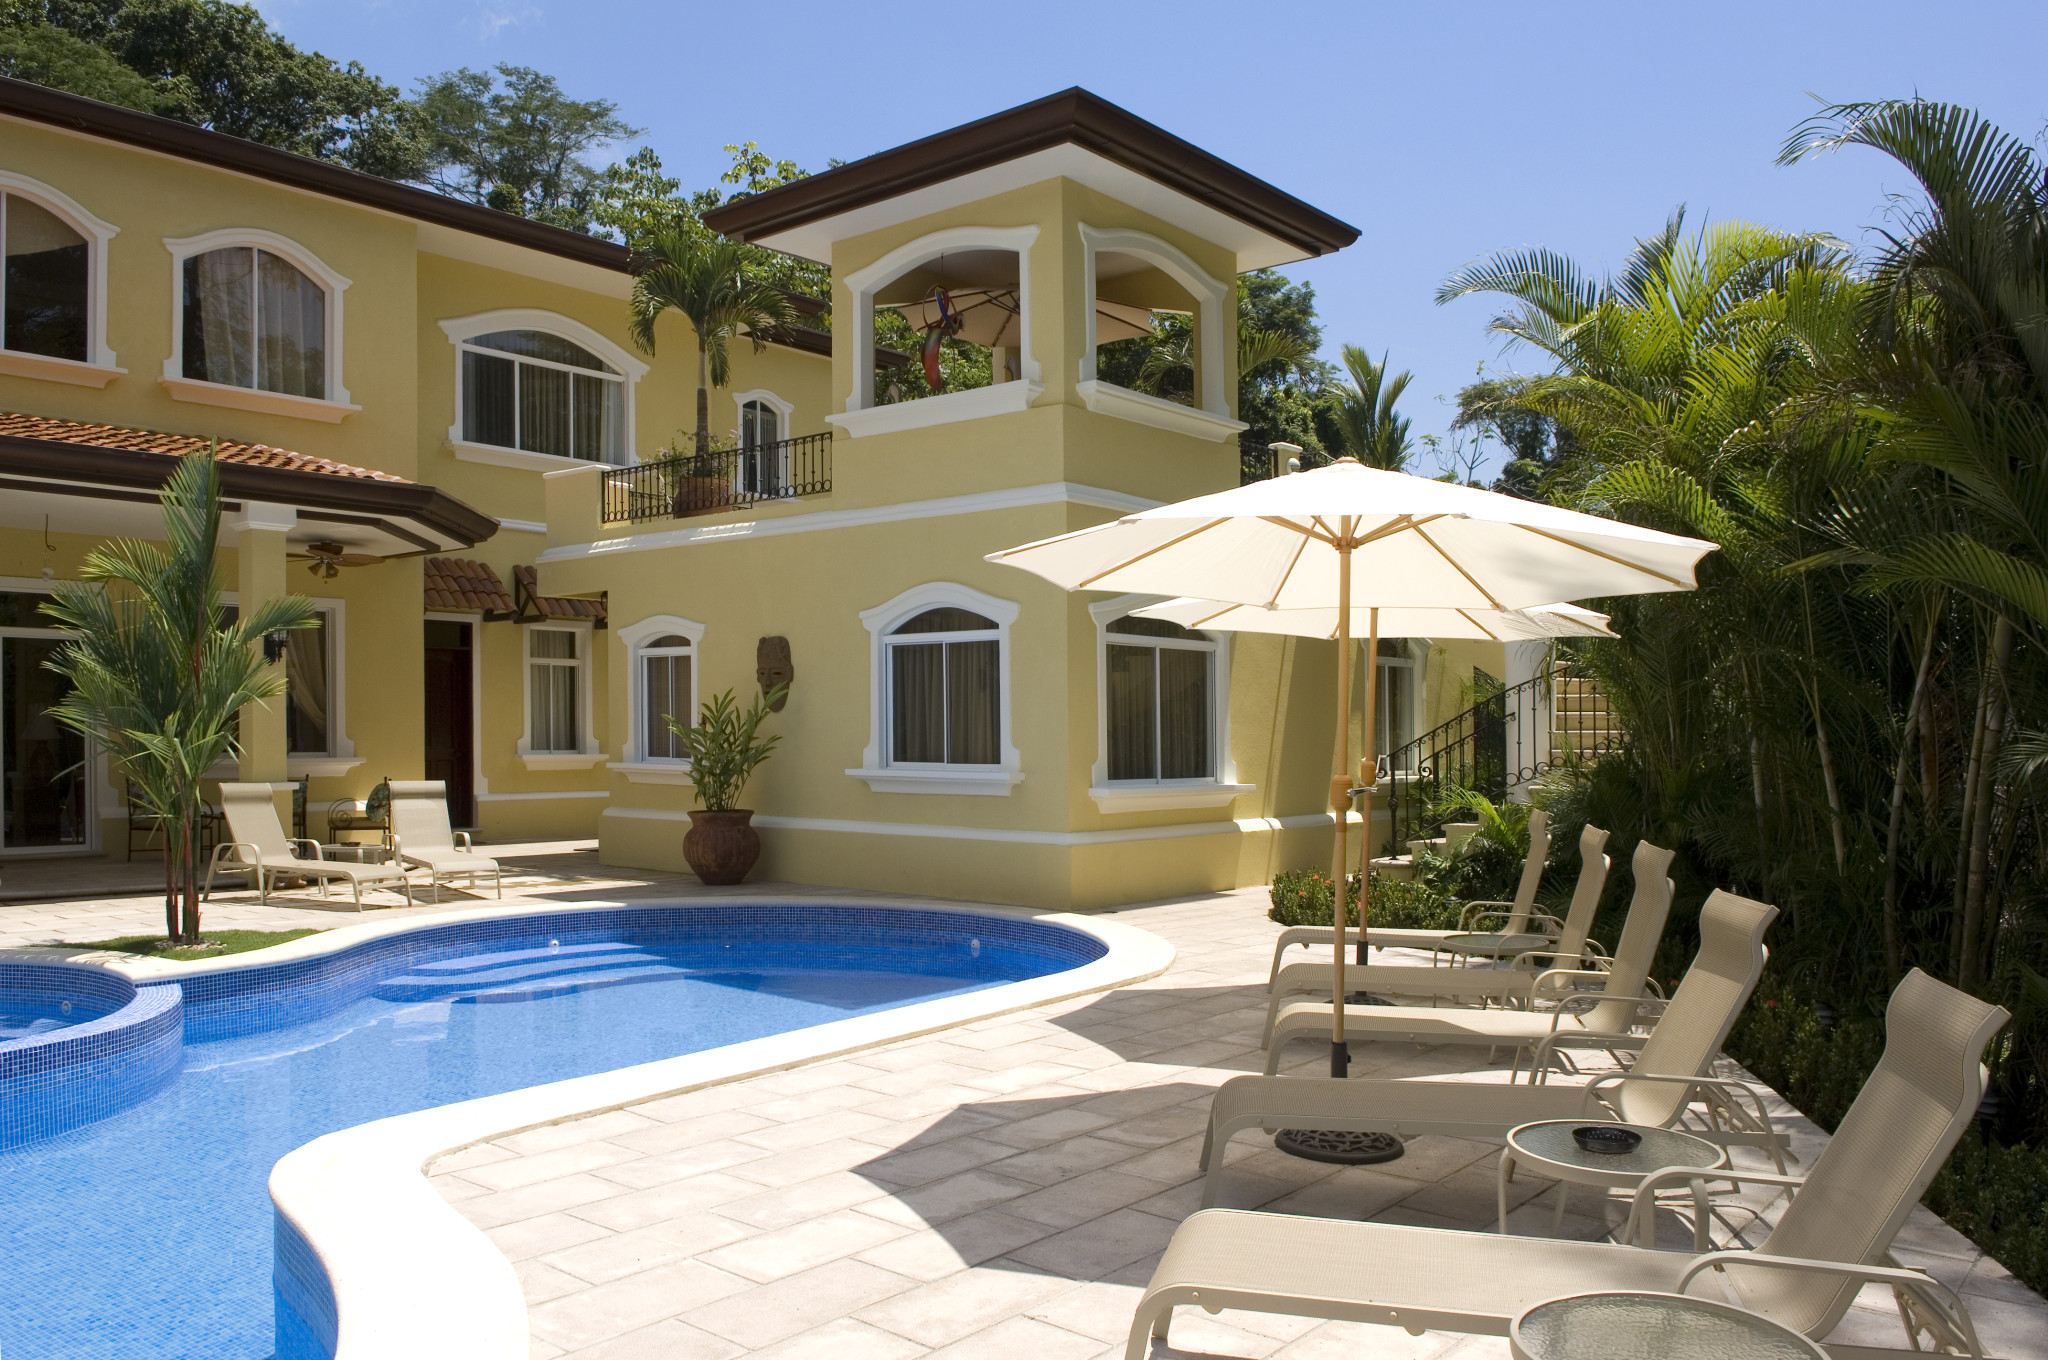 Casa Sueños – Largest house at the resort, private pool + amenities,  8 bedrooms 10 baths.